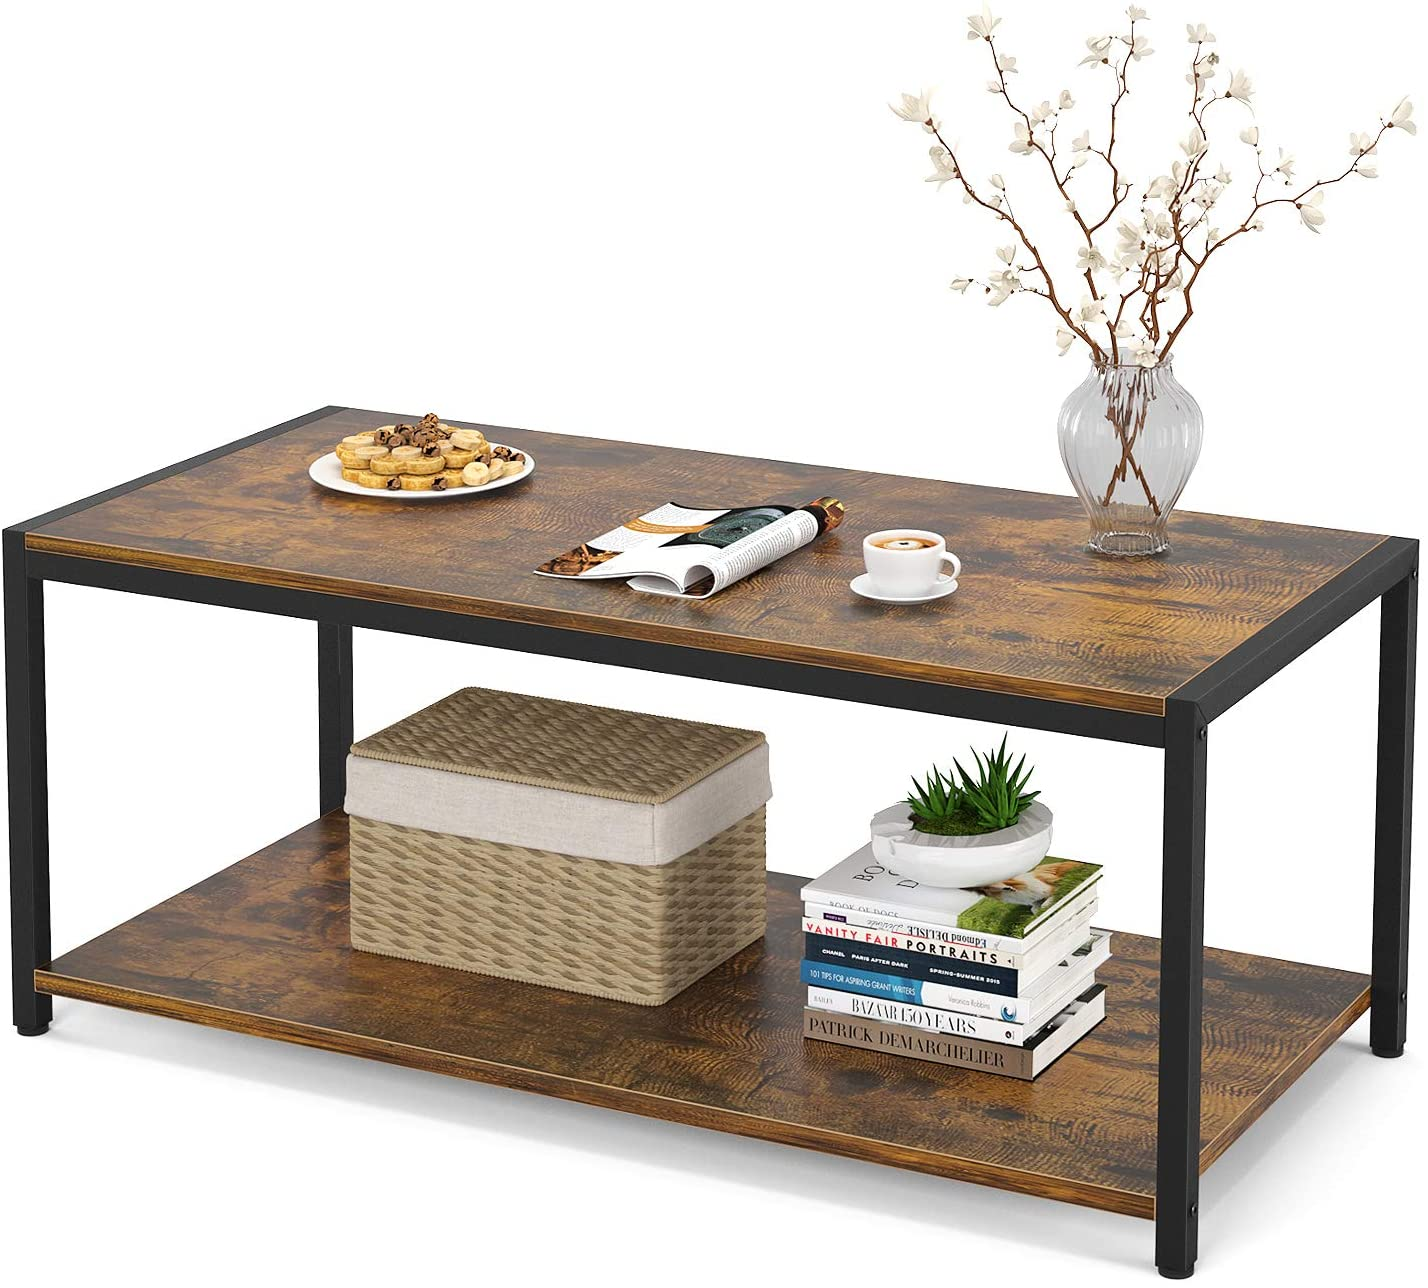 Sale Special Price Homieasy Coffee Table Free Shipping Cheap Bargain Gift 43